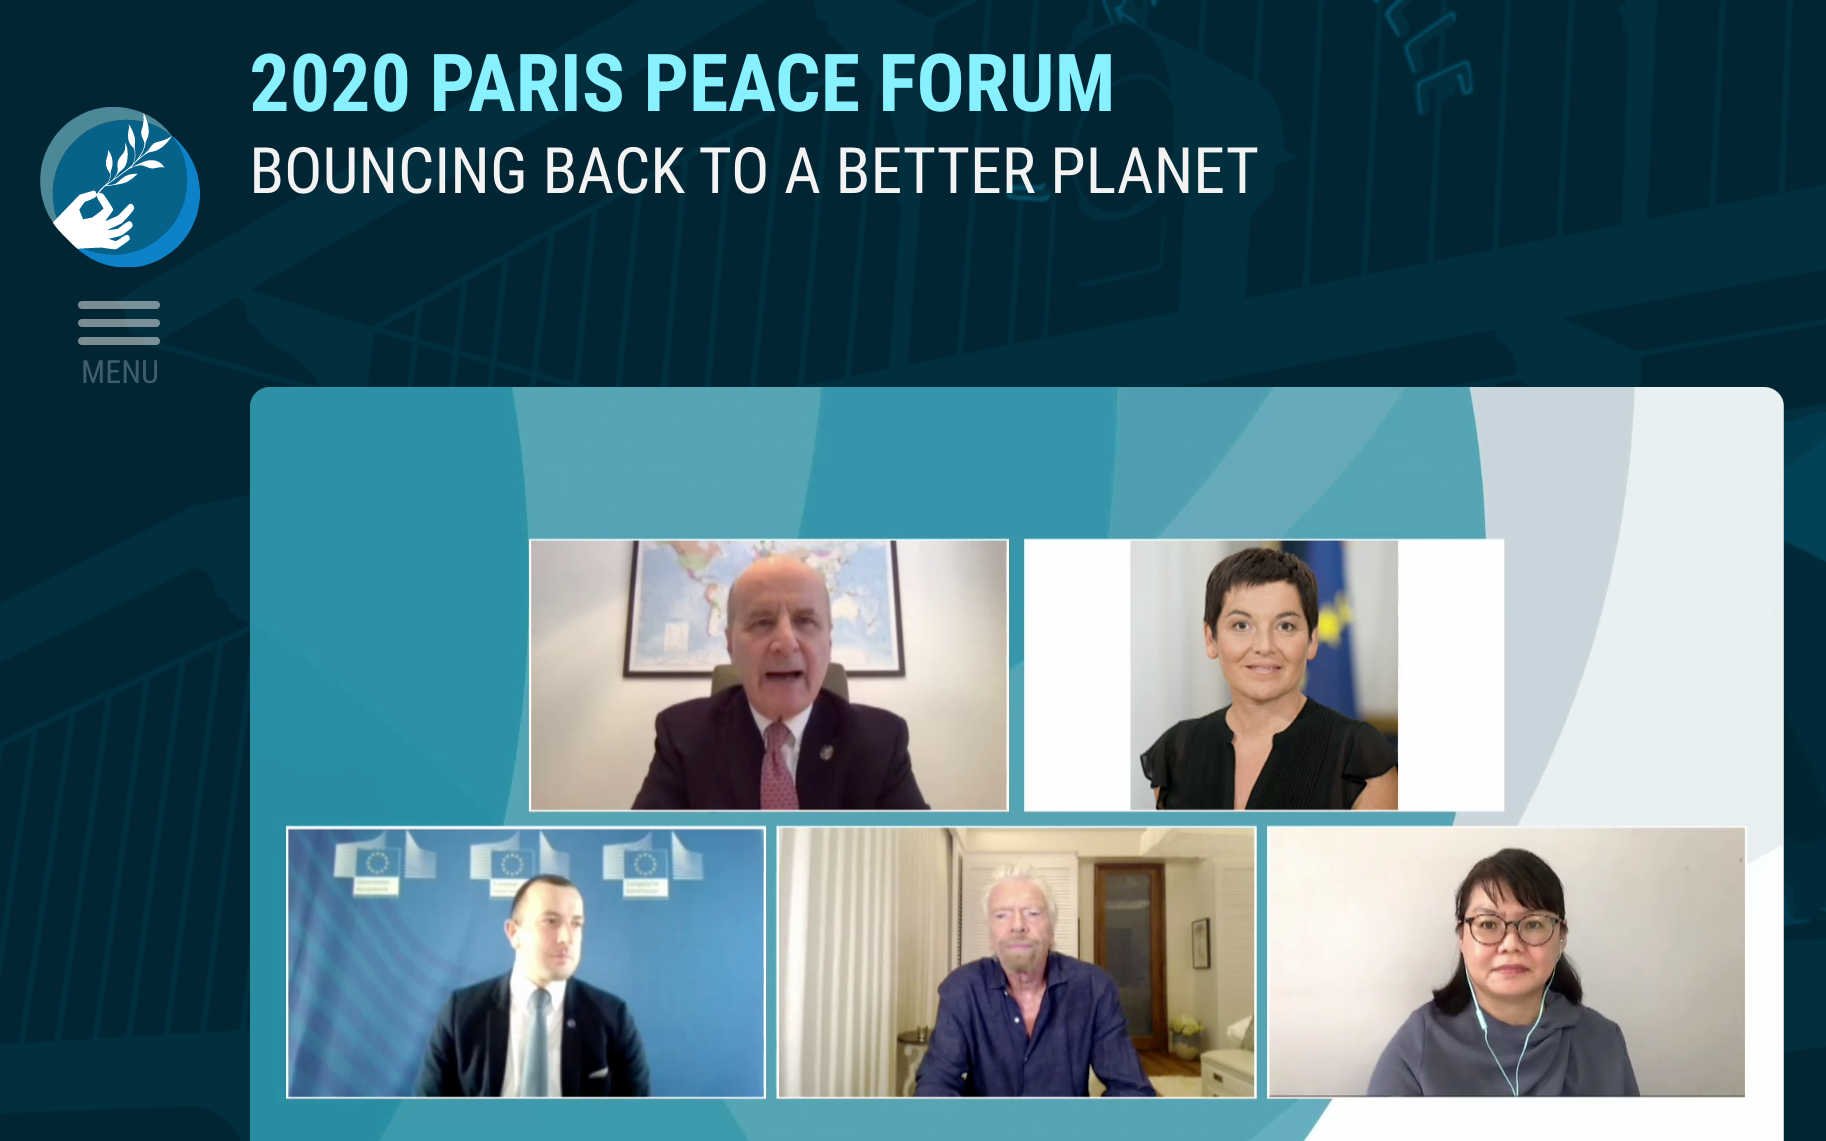 Image from the Paris Peace Forum